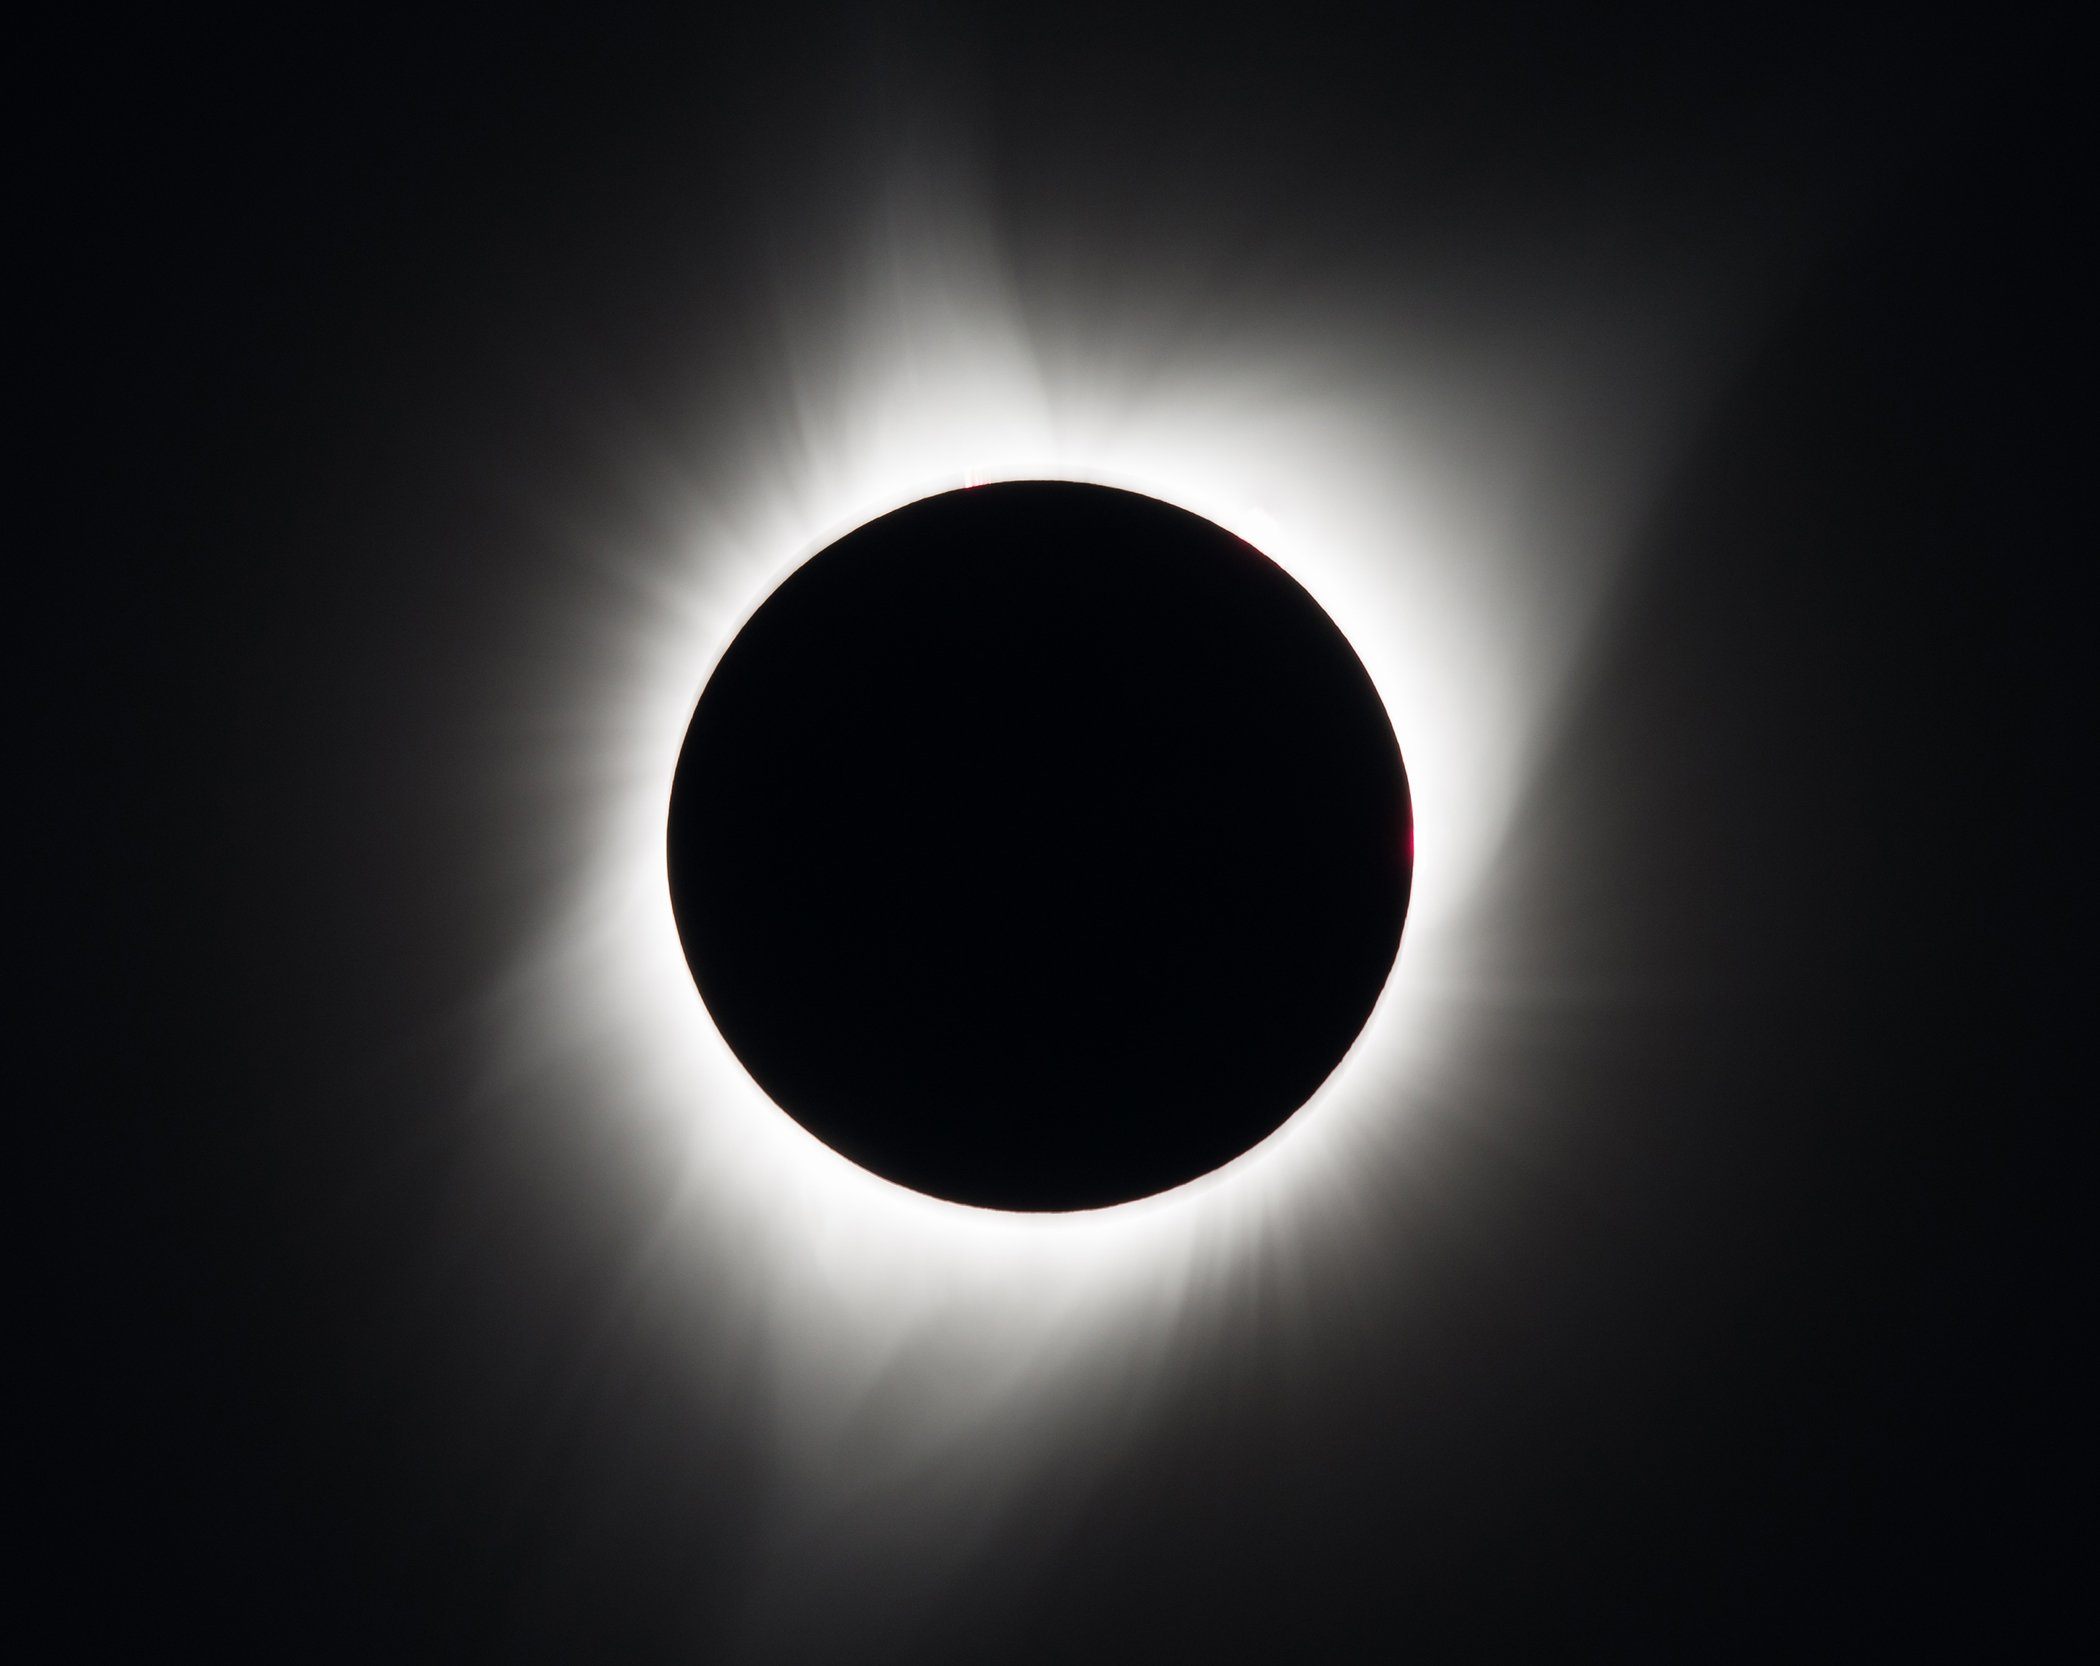 2017-Year-In-Photos-Eclipse-13.jpg